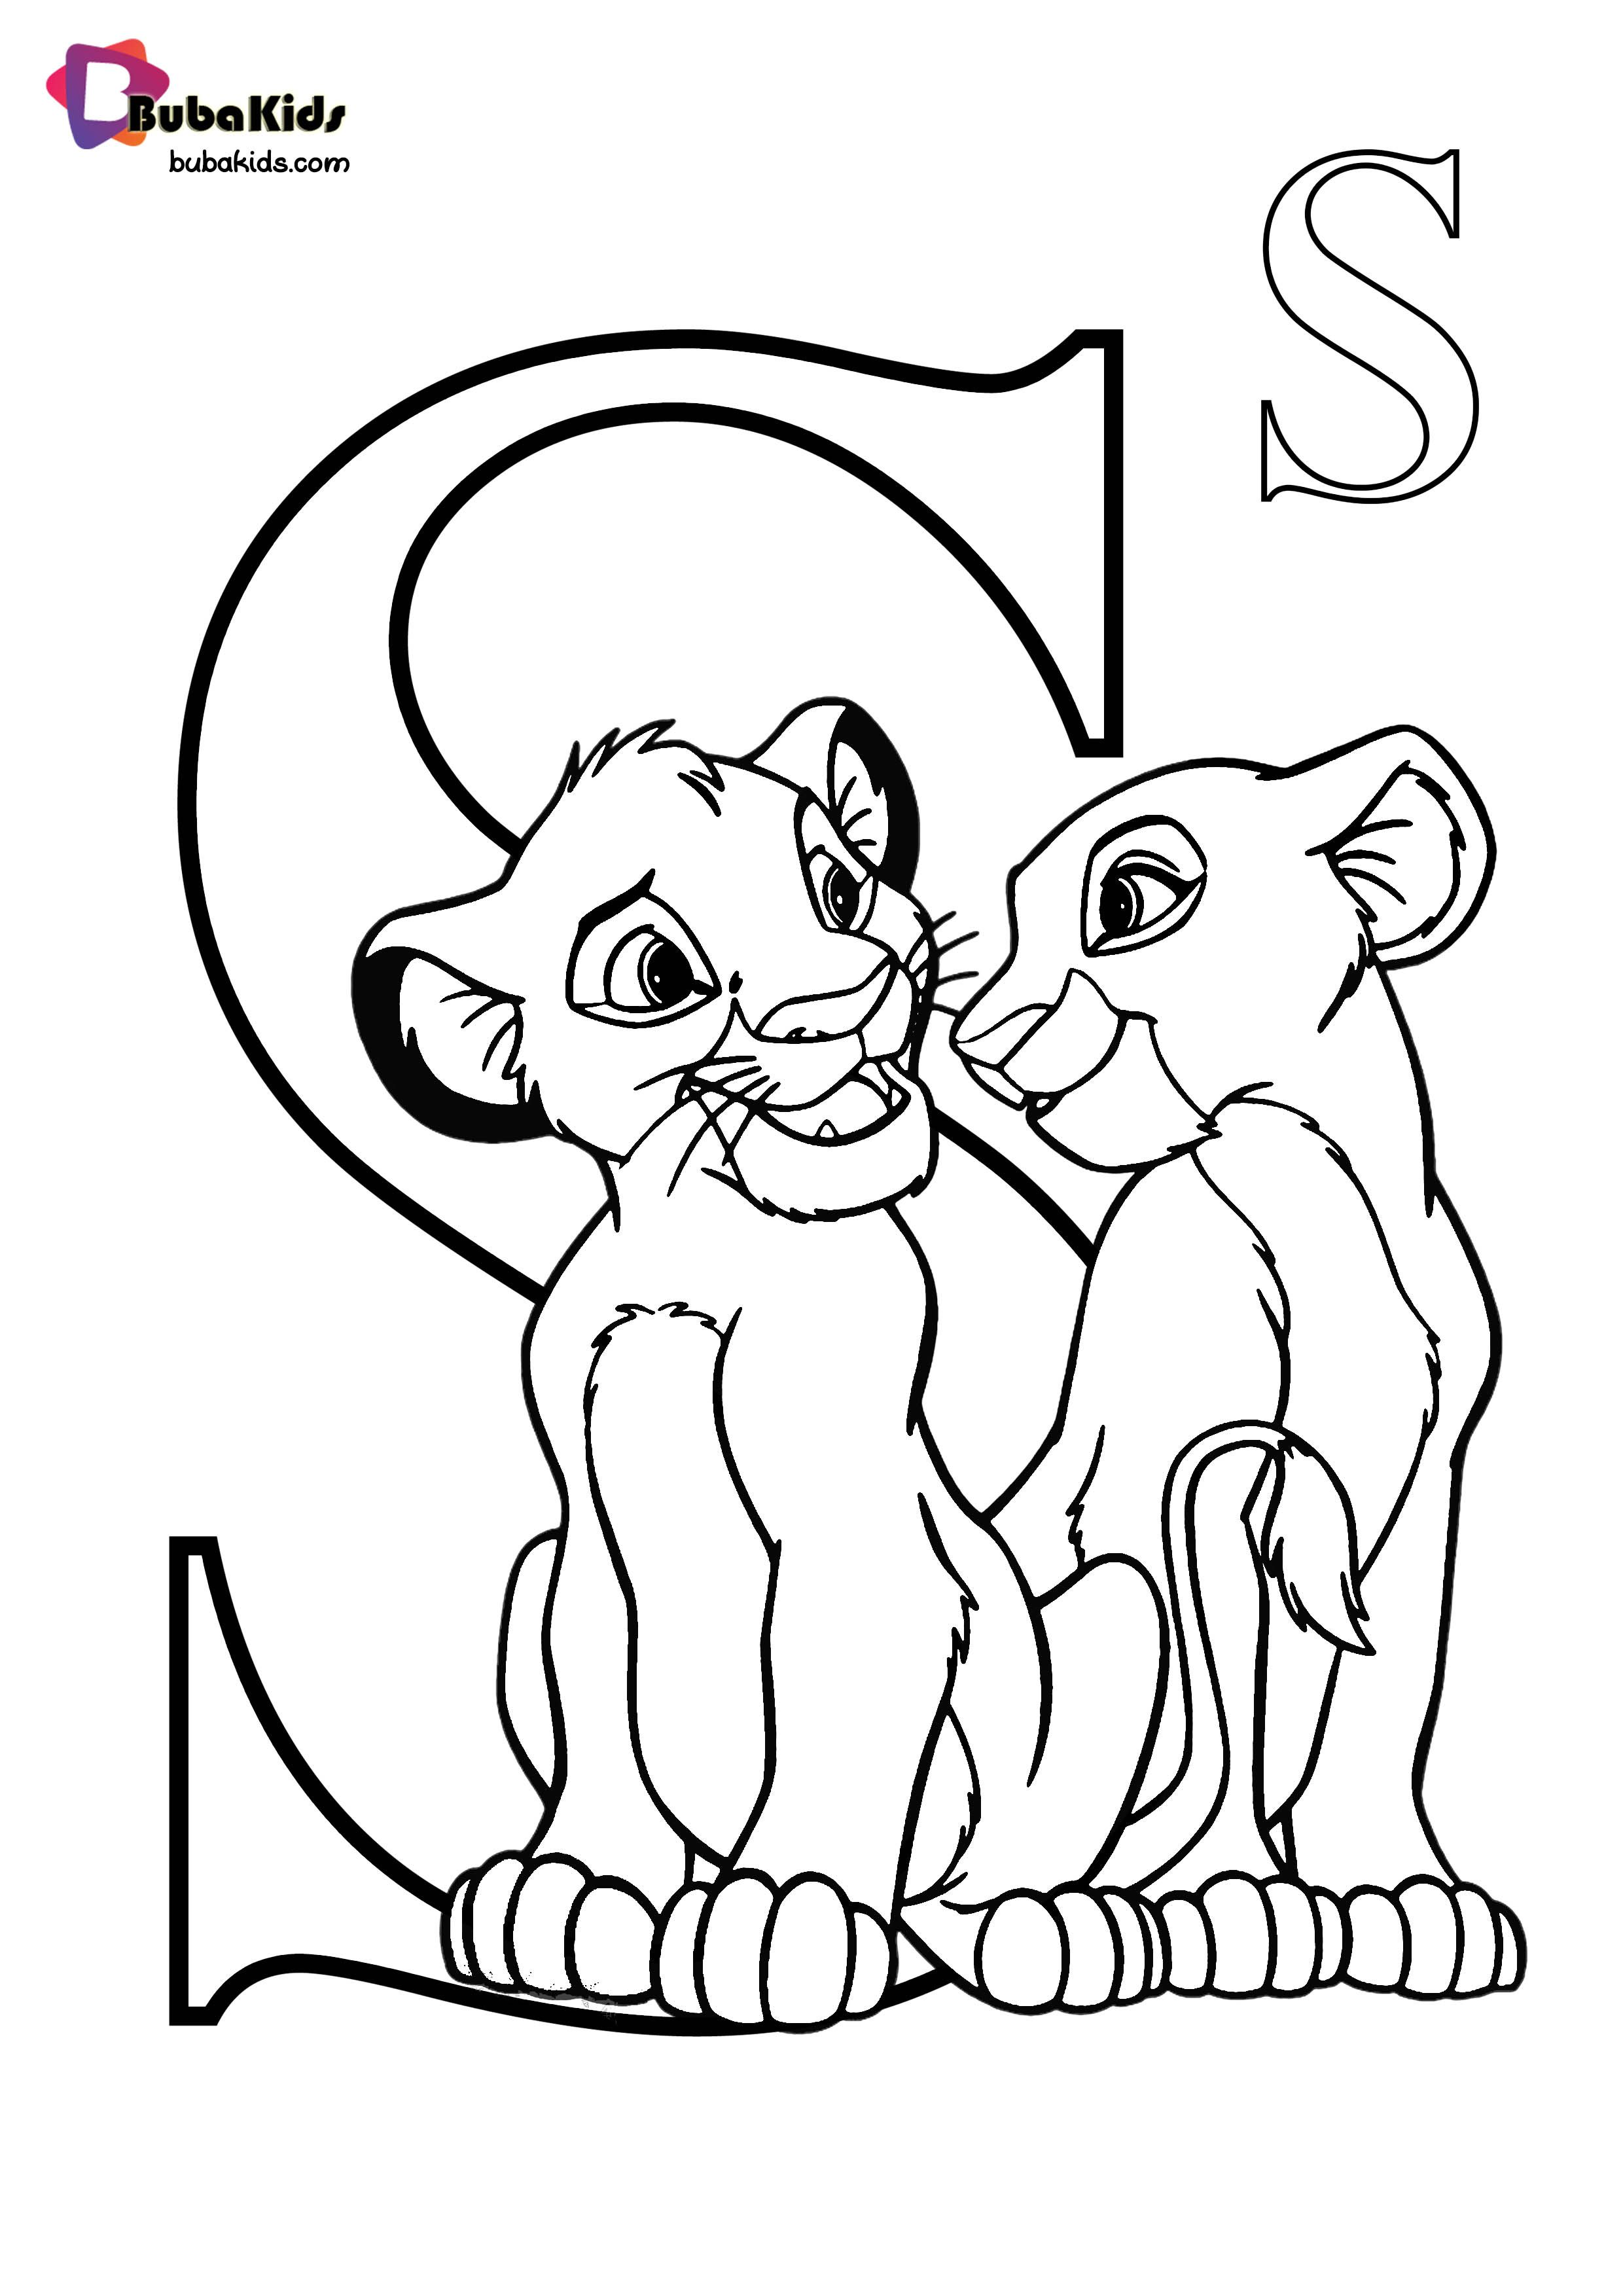 Simba Letter S Coloring Page For Toddler Bubakids Lettercoloringpage Simbacoloringpage Lettercolo Cartoon Coloring Pages Disney Coloring Pages Disney Letters [ 3508 x 2480 Pixel ]